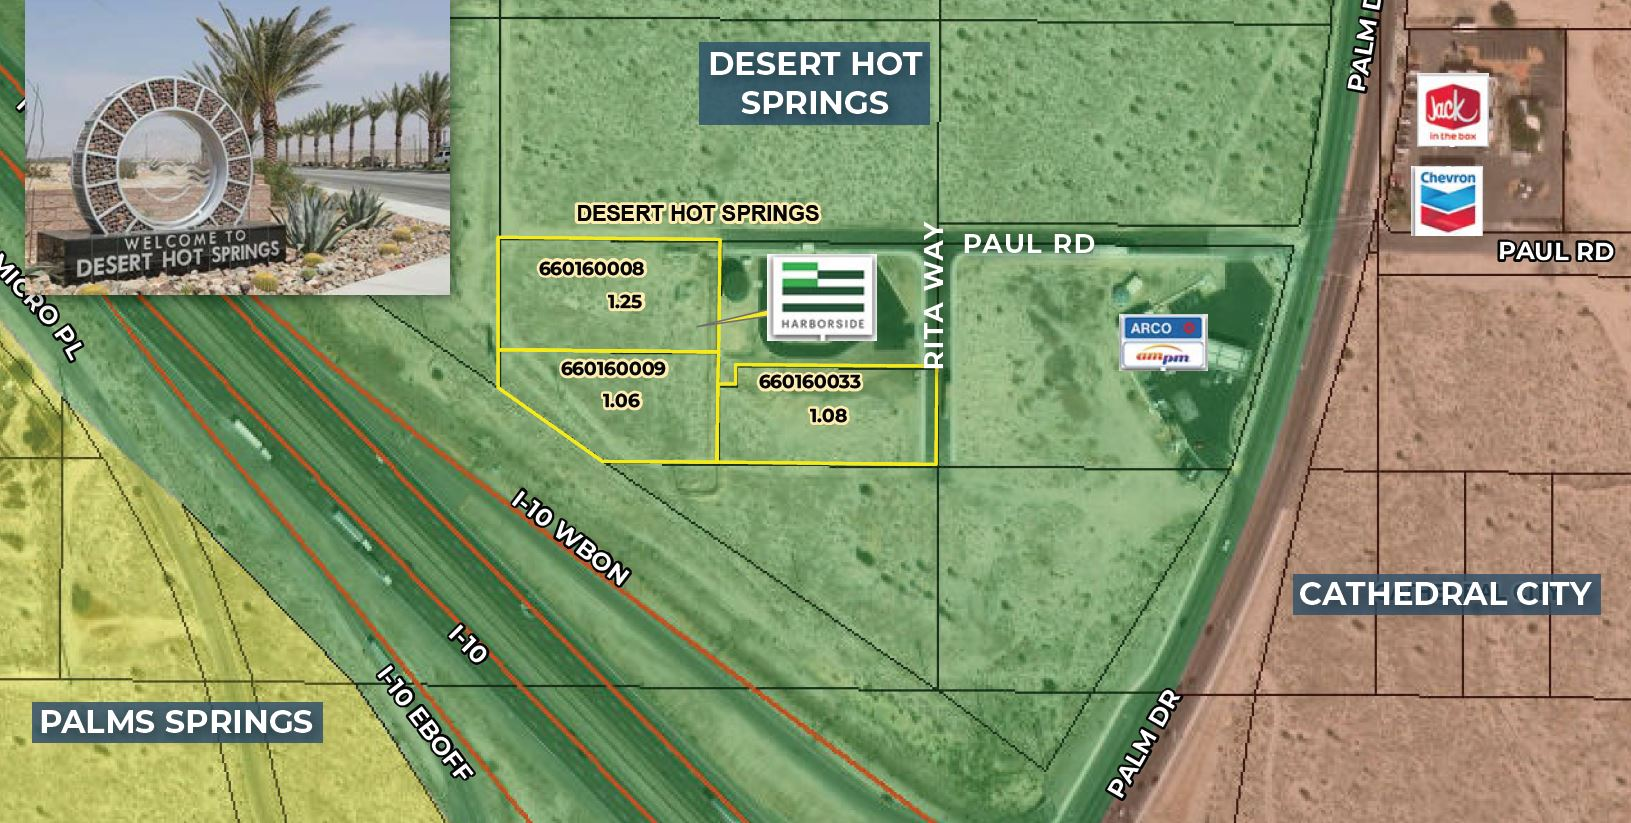 zoomed in map 1.06-3.39 ac highway commercial for sale at desert hot springs california